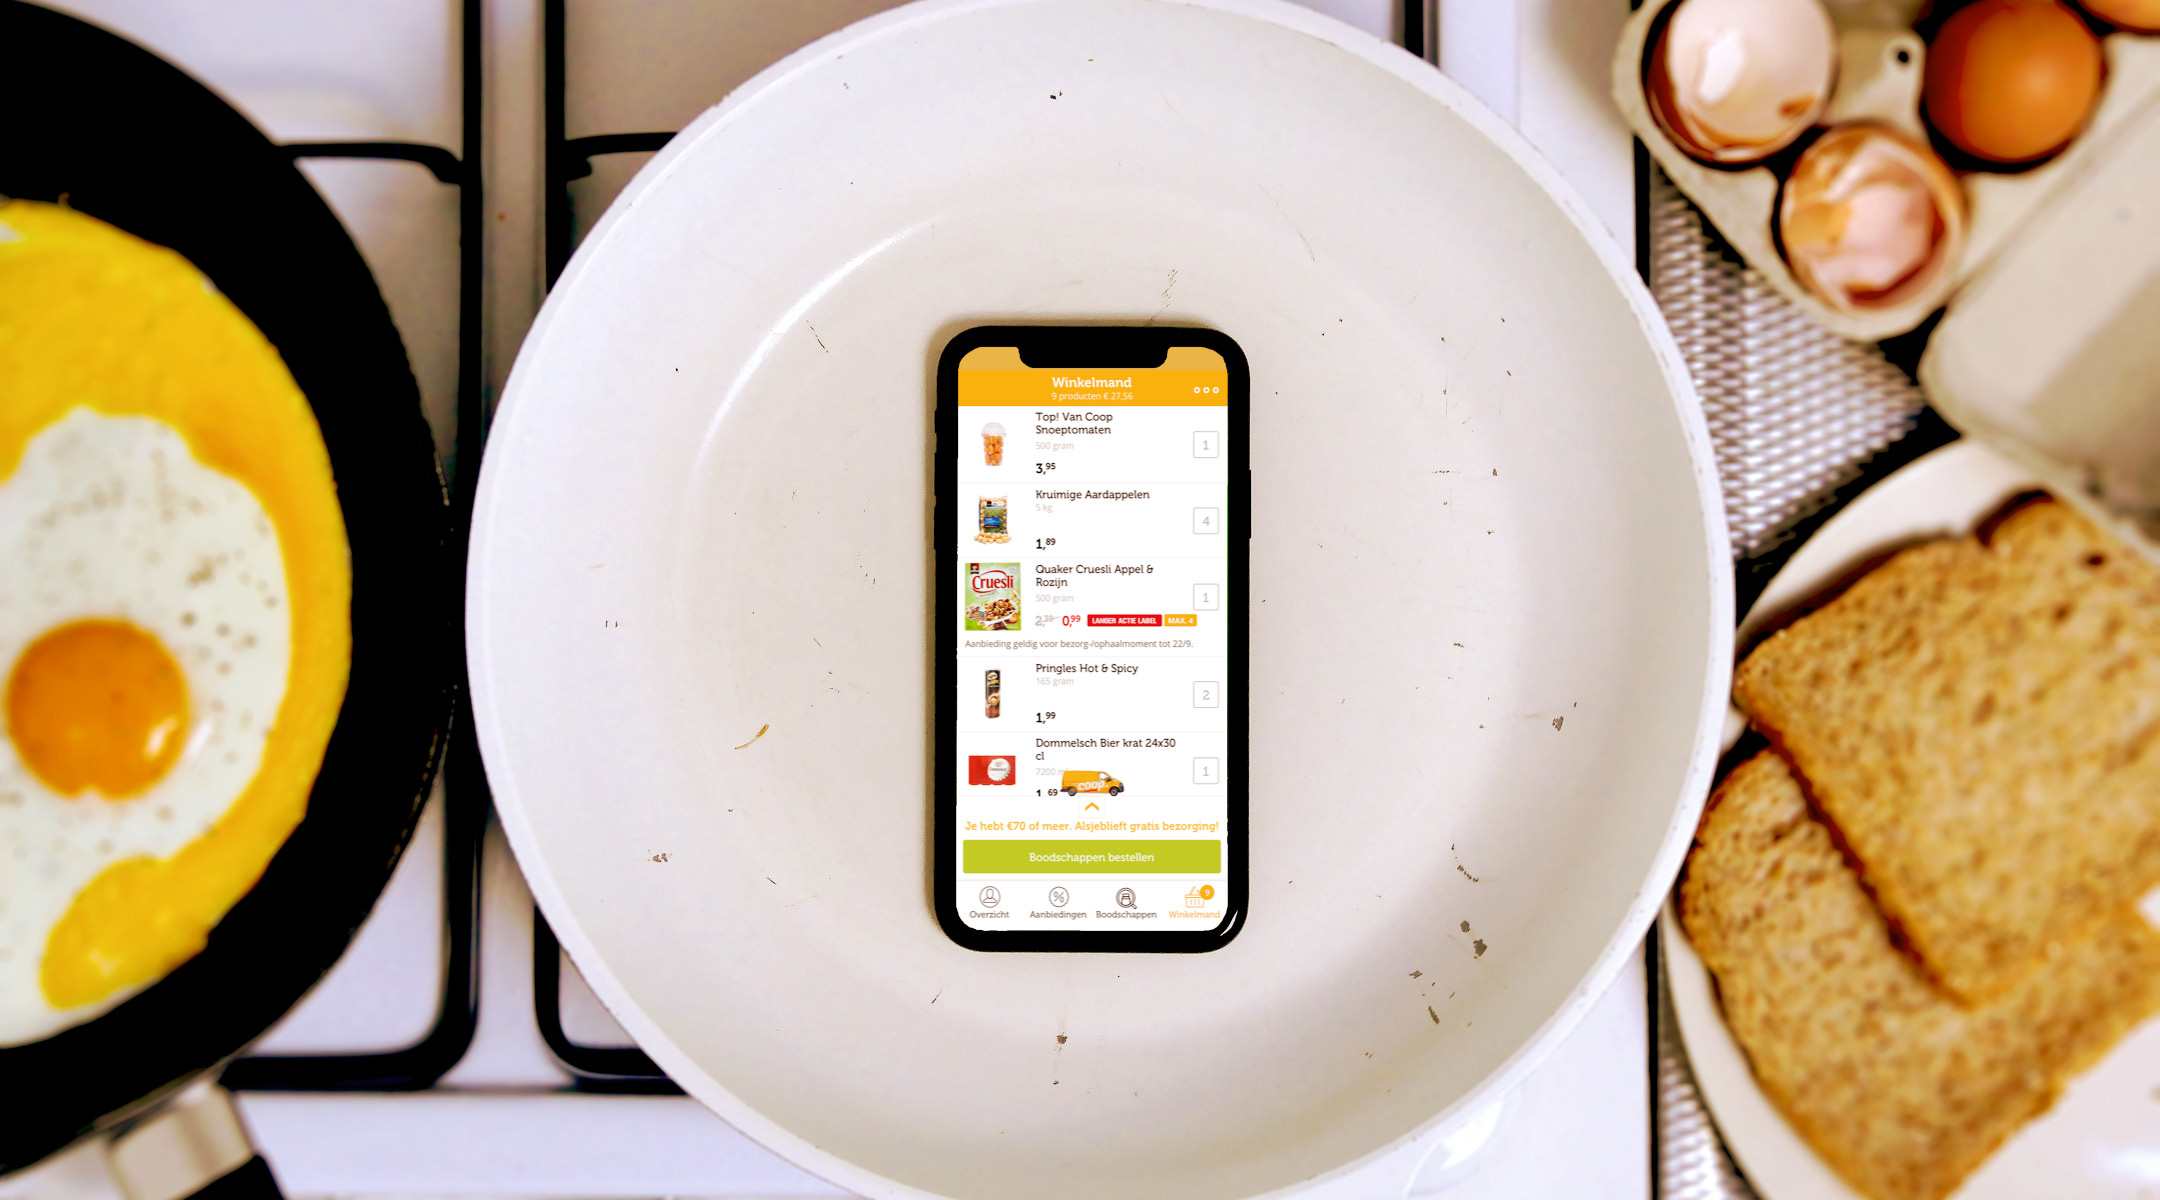 Easter-egg-incentro-mobile-phone-kitchen-app-development